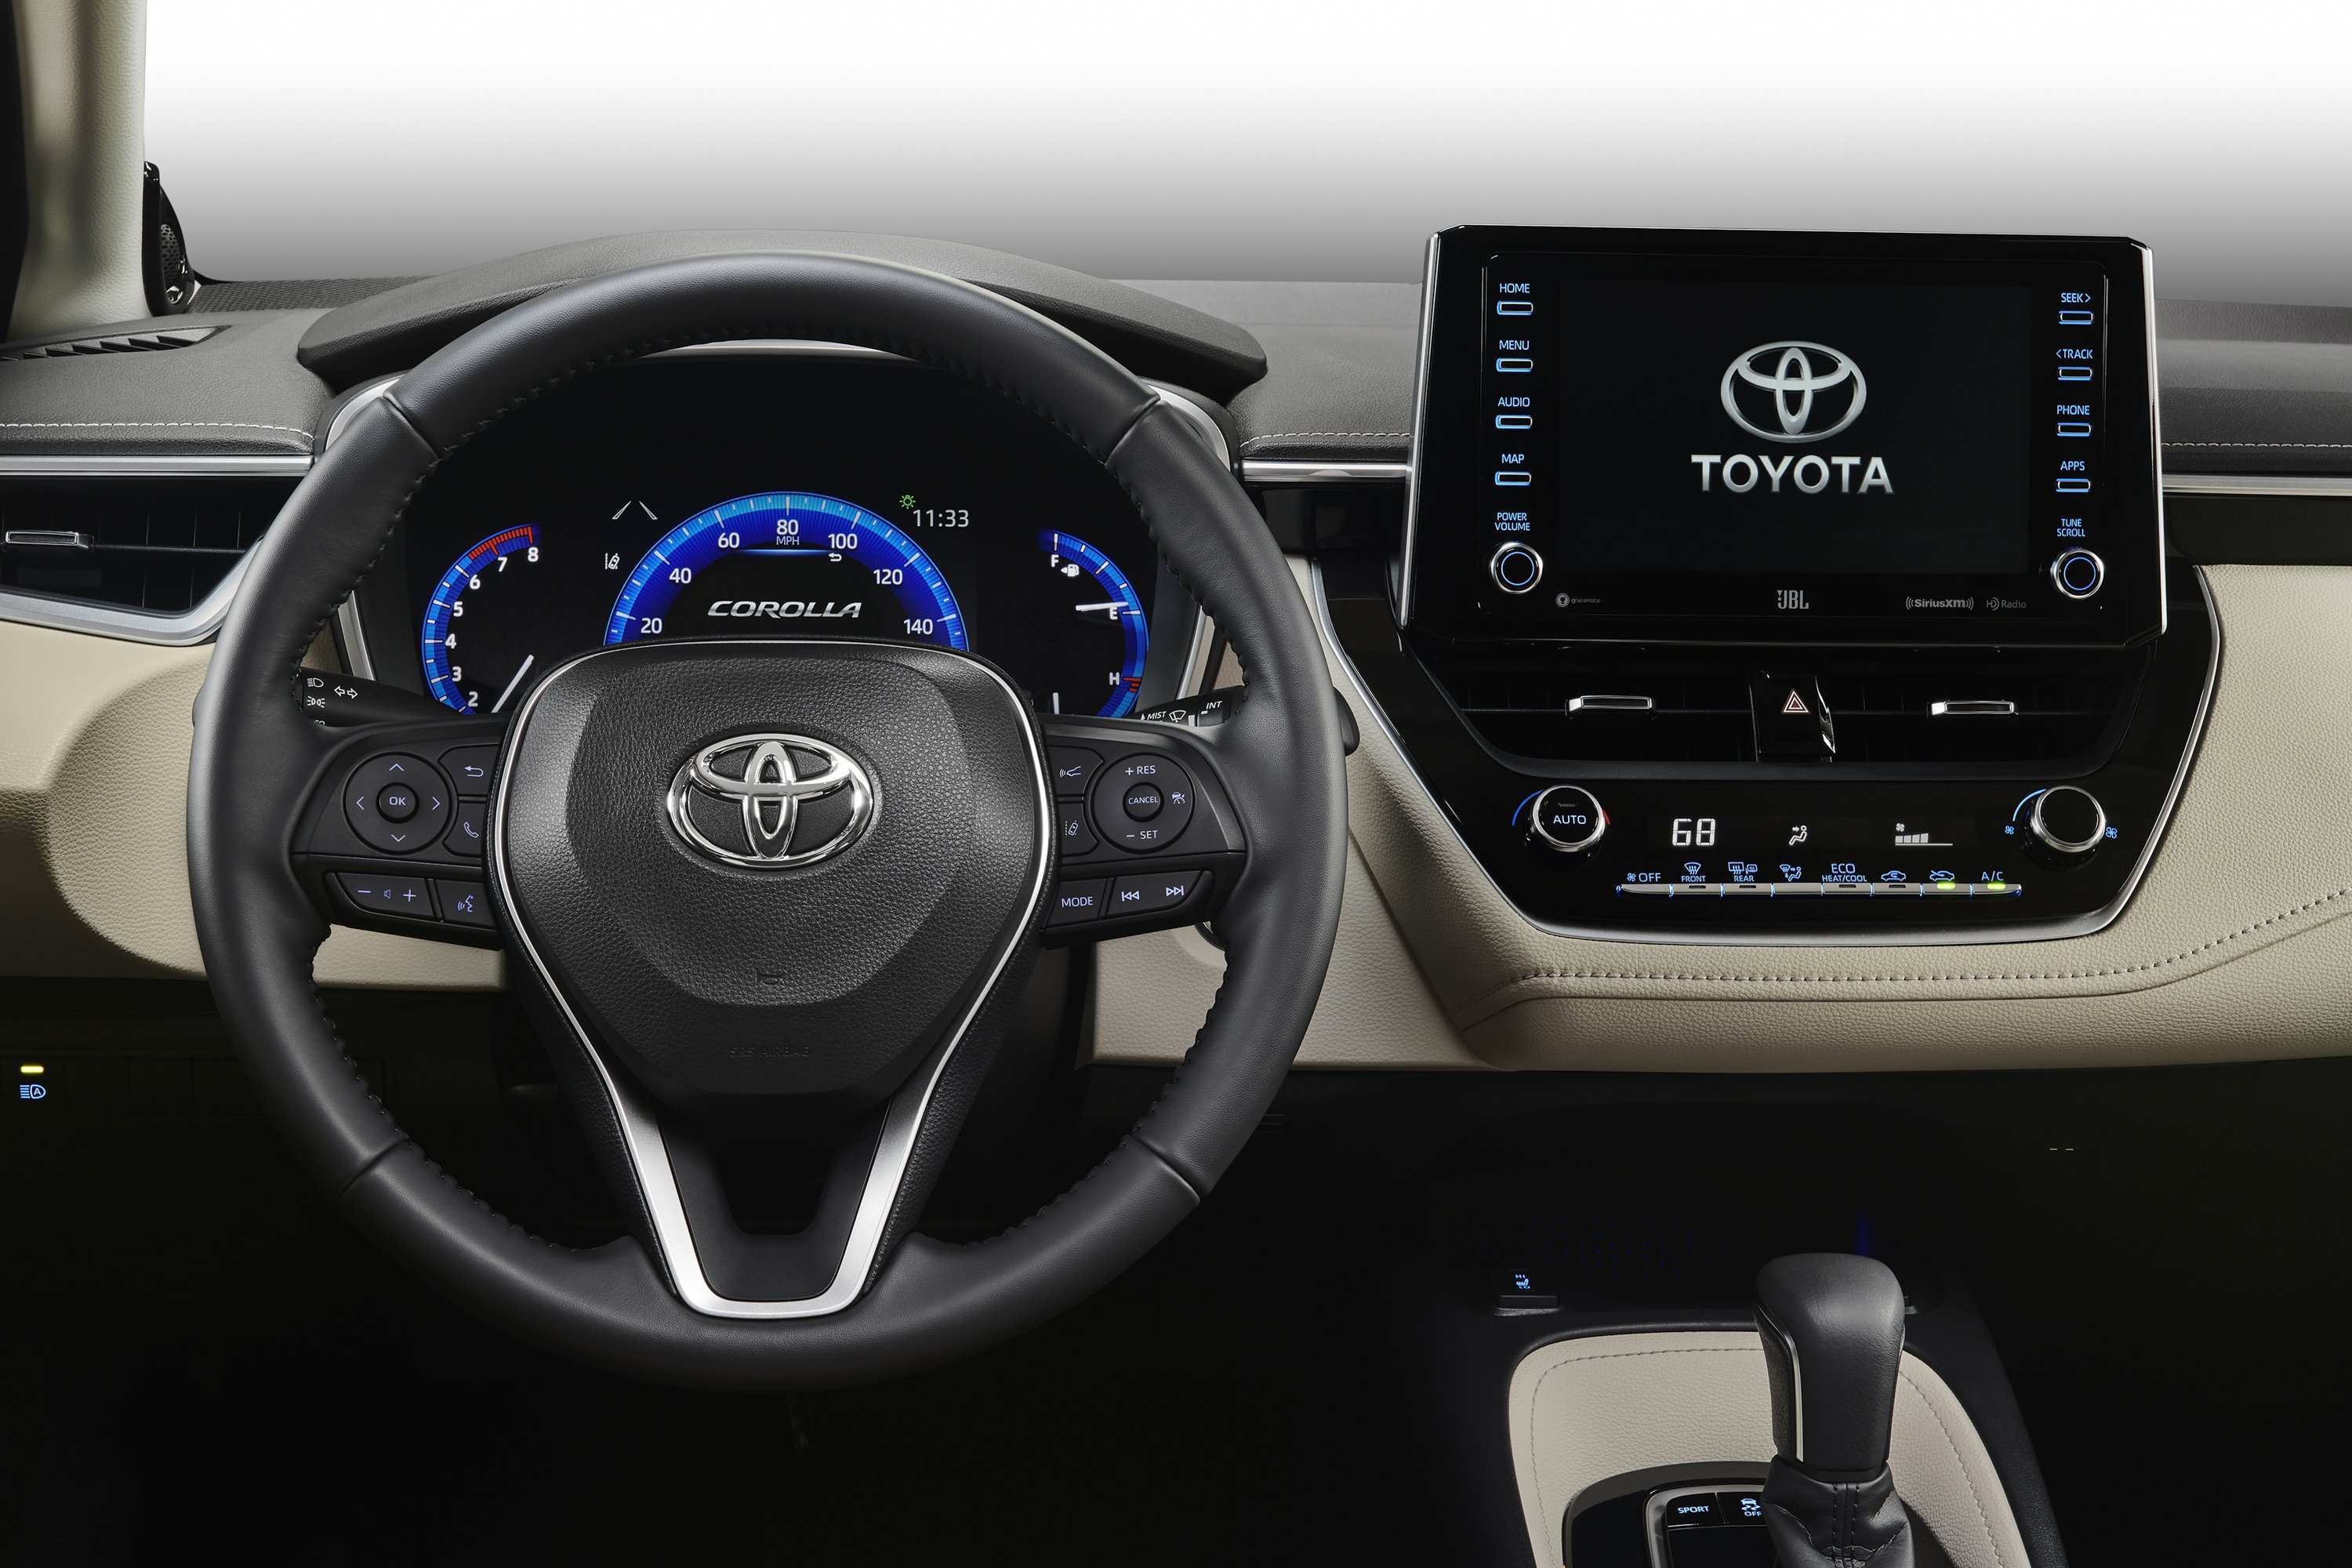 56 The Best Toyota Corolla 2020 Model Redesign And Review